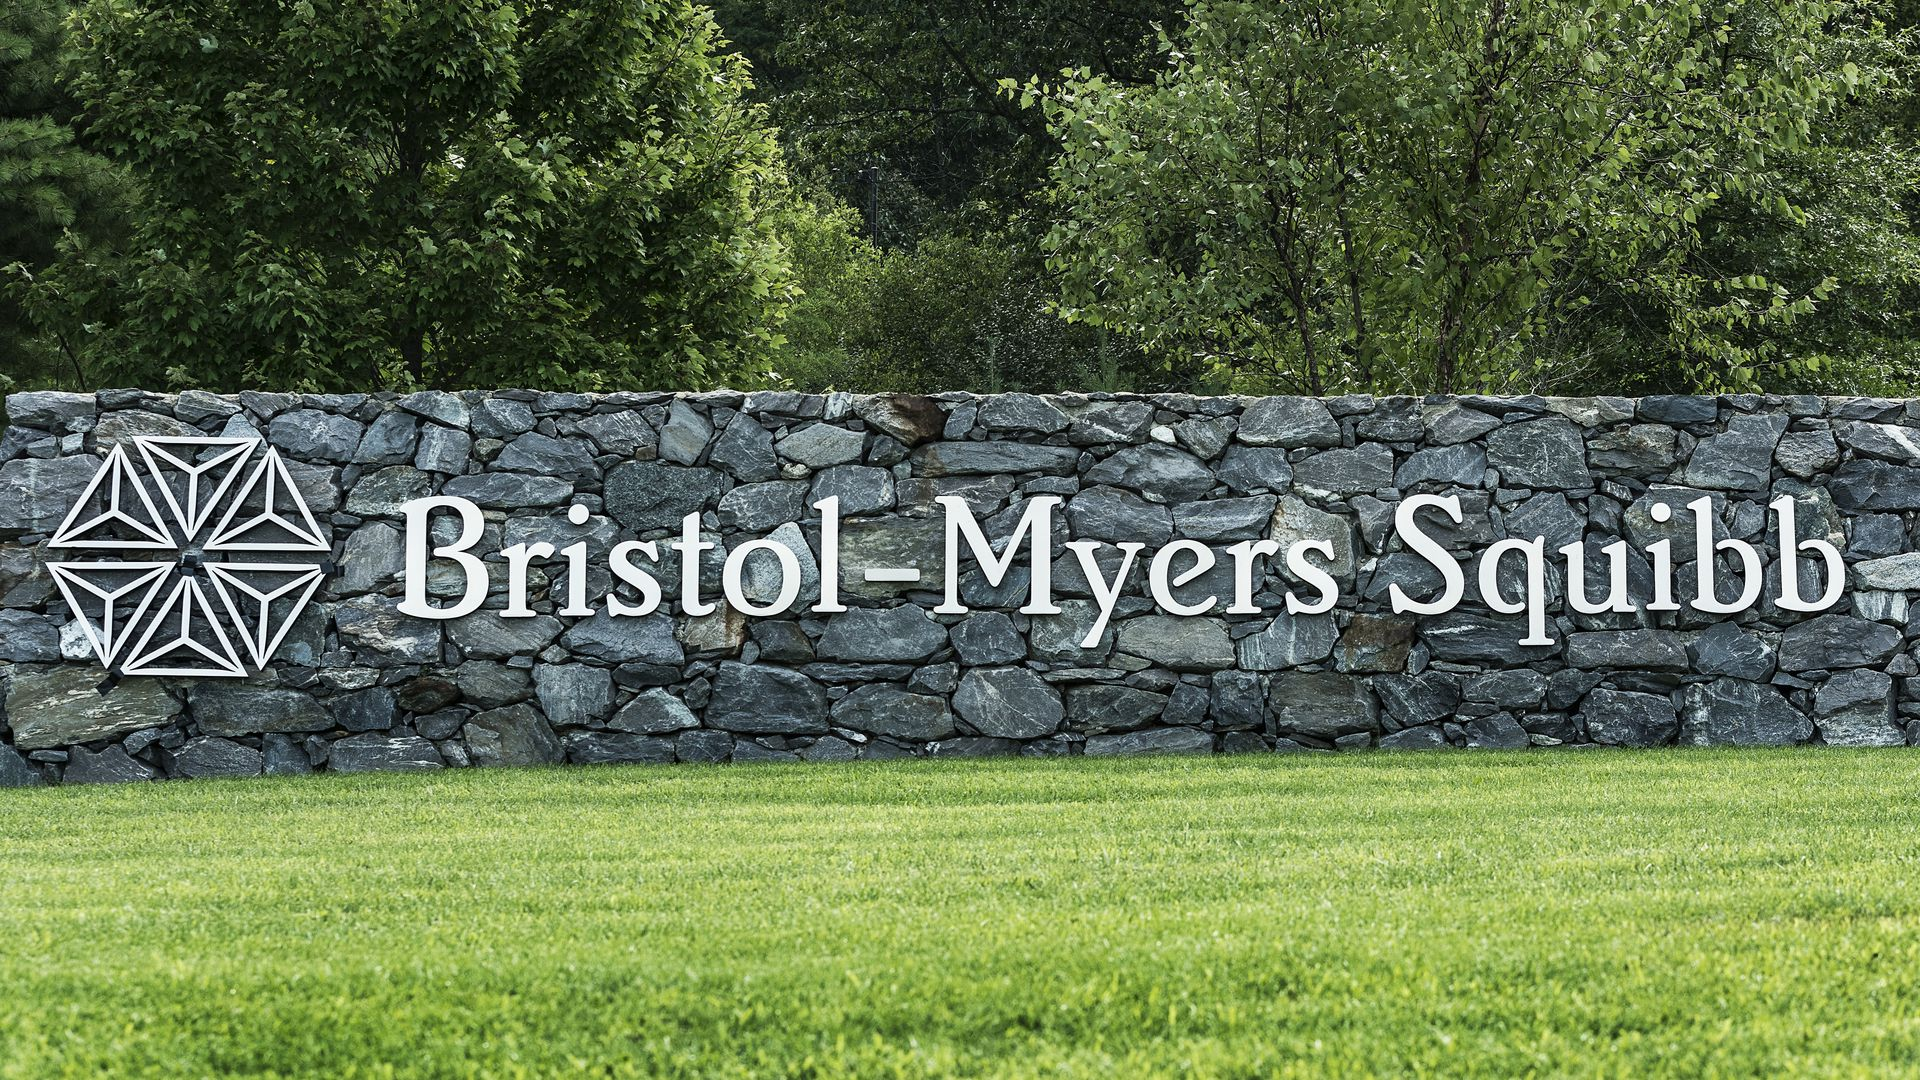 The corporate headquarters of Bristol-Myers Squibb.